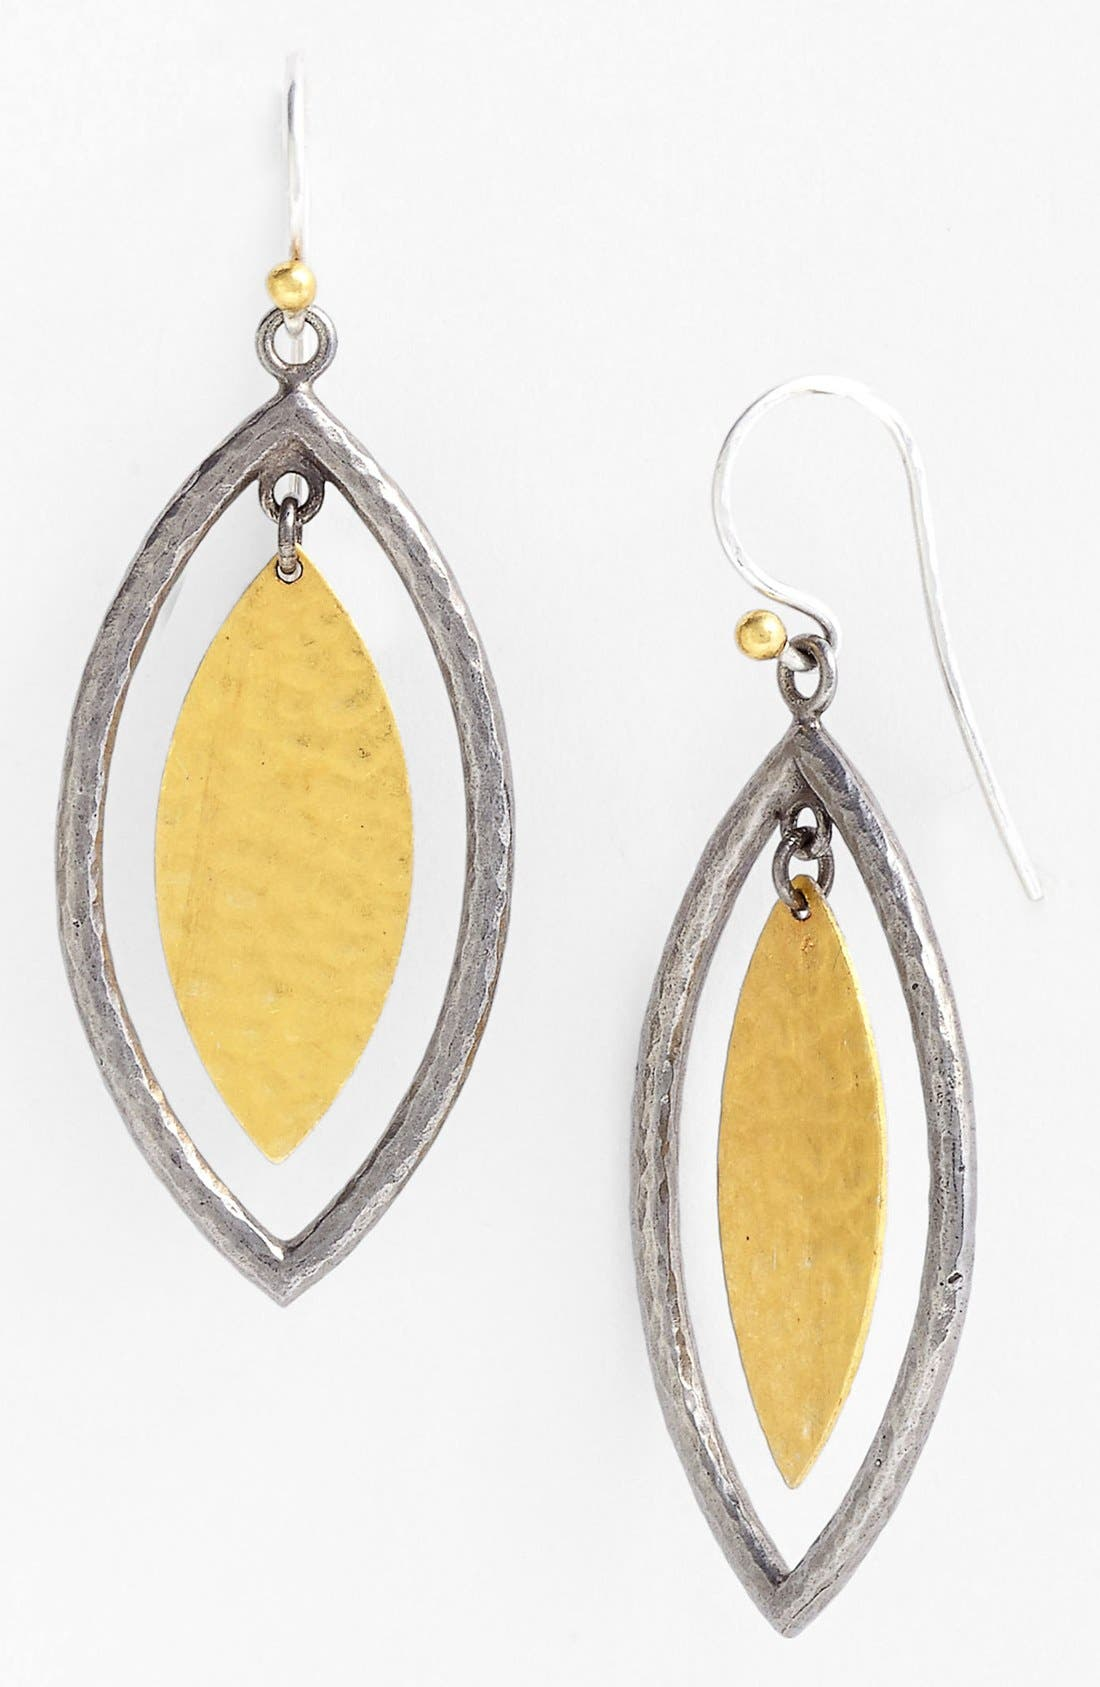 Main Image - Gurhan 'Willow' Blackened Silver & Gold Earrings